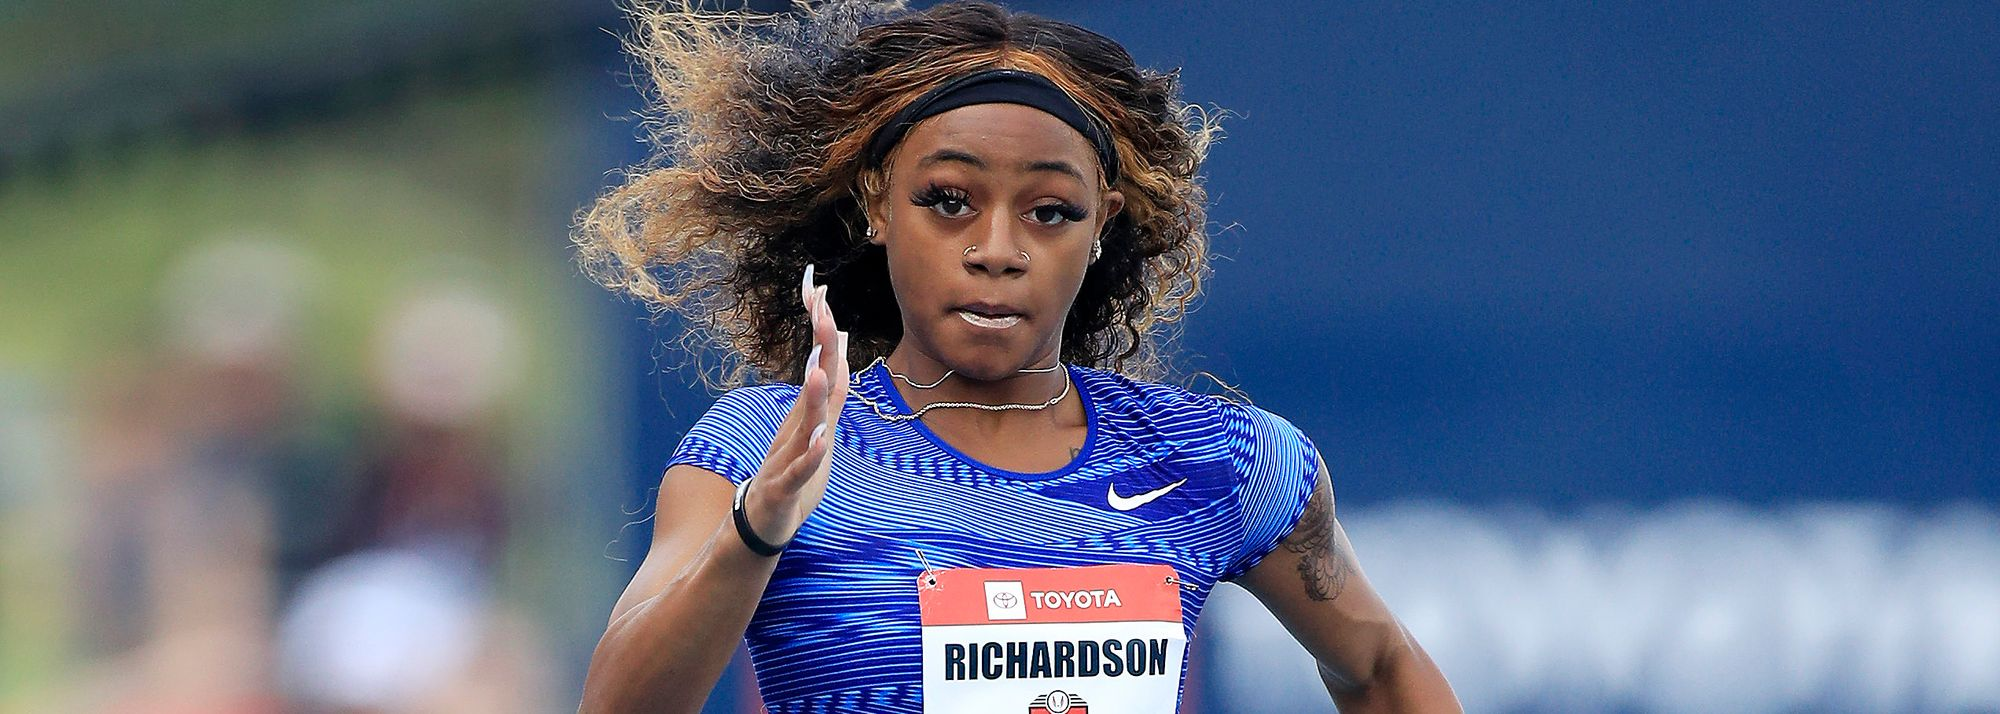 Just one week after clocking 10.72 for 100m, Sha'Carri Richardson continued her fine form to run 22.11 (1.0m/s) in her 200m season debut at the Tom Jones Memorial Invitational in Gainesville, Florida, on Friday (16).